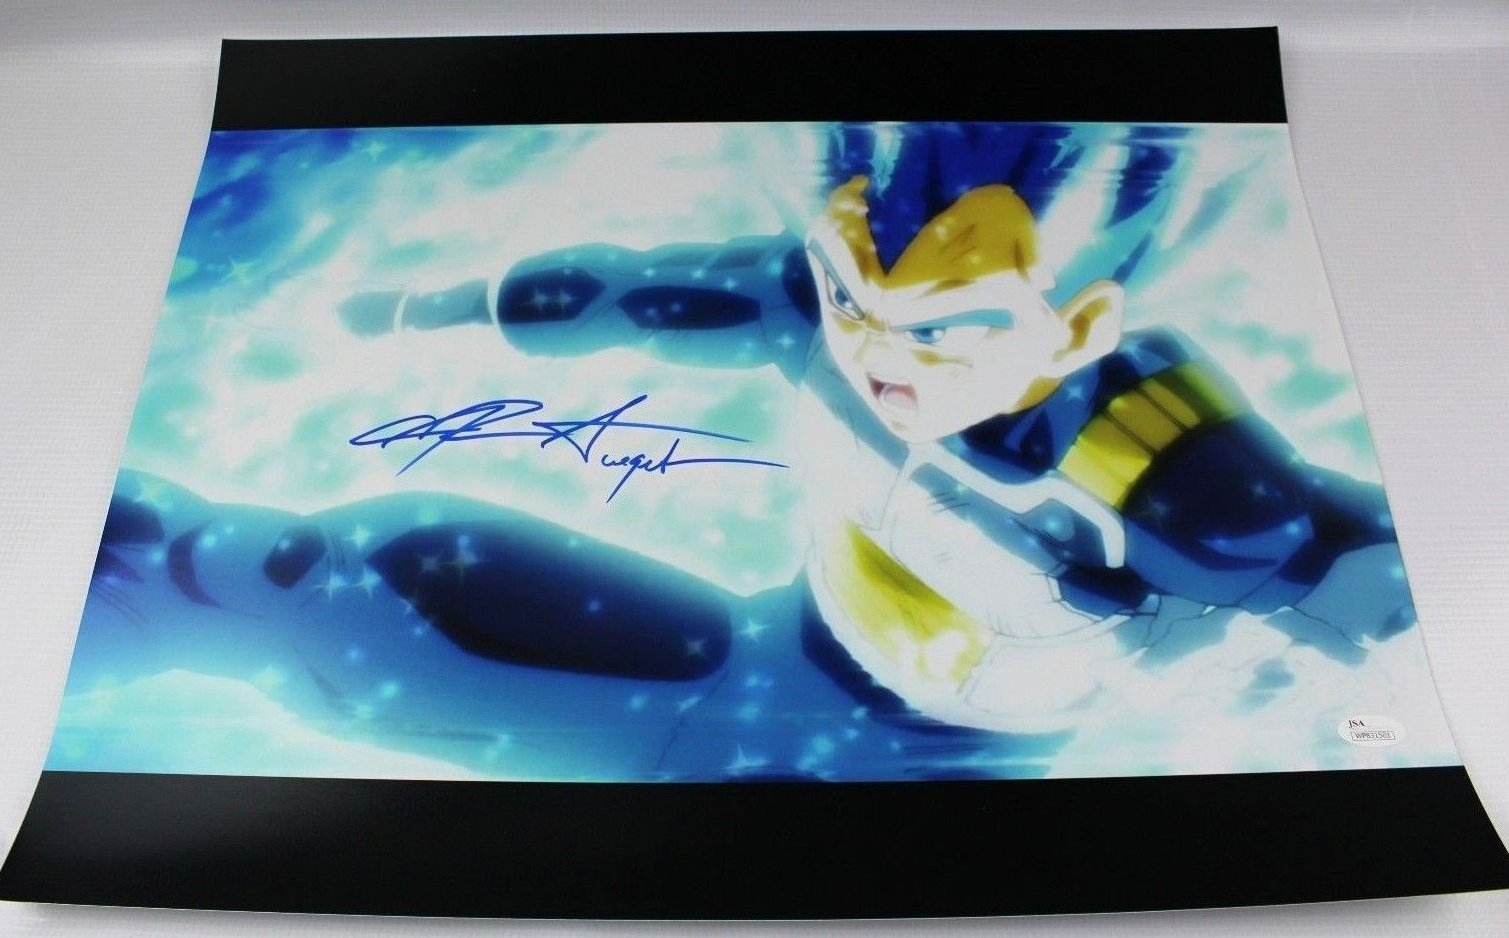 Chris Sabat Authentic SIGNED 16x20 Picture Autograph Dragon Ball Z Vegeta JSA 1